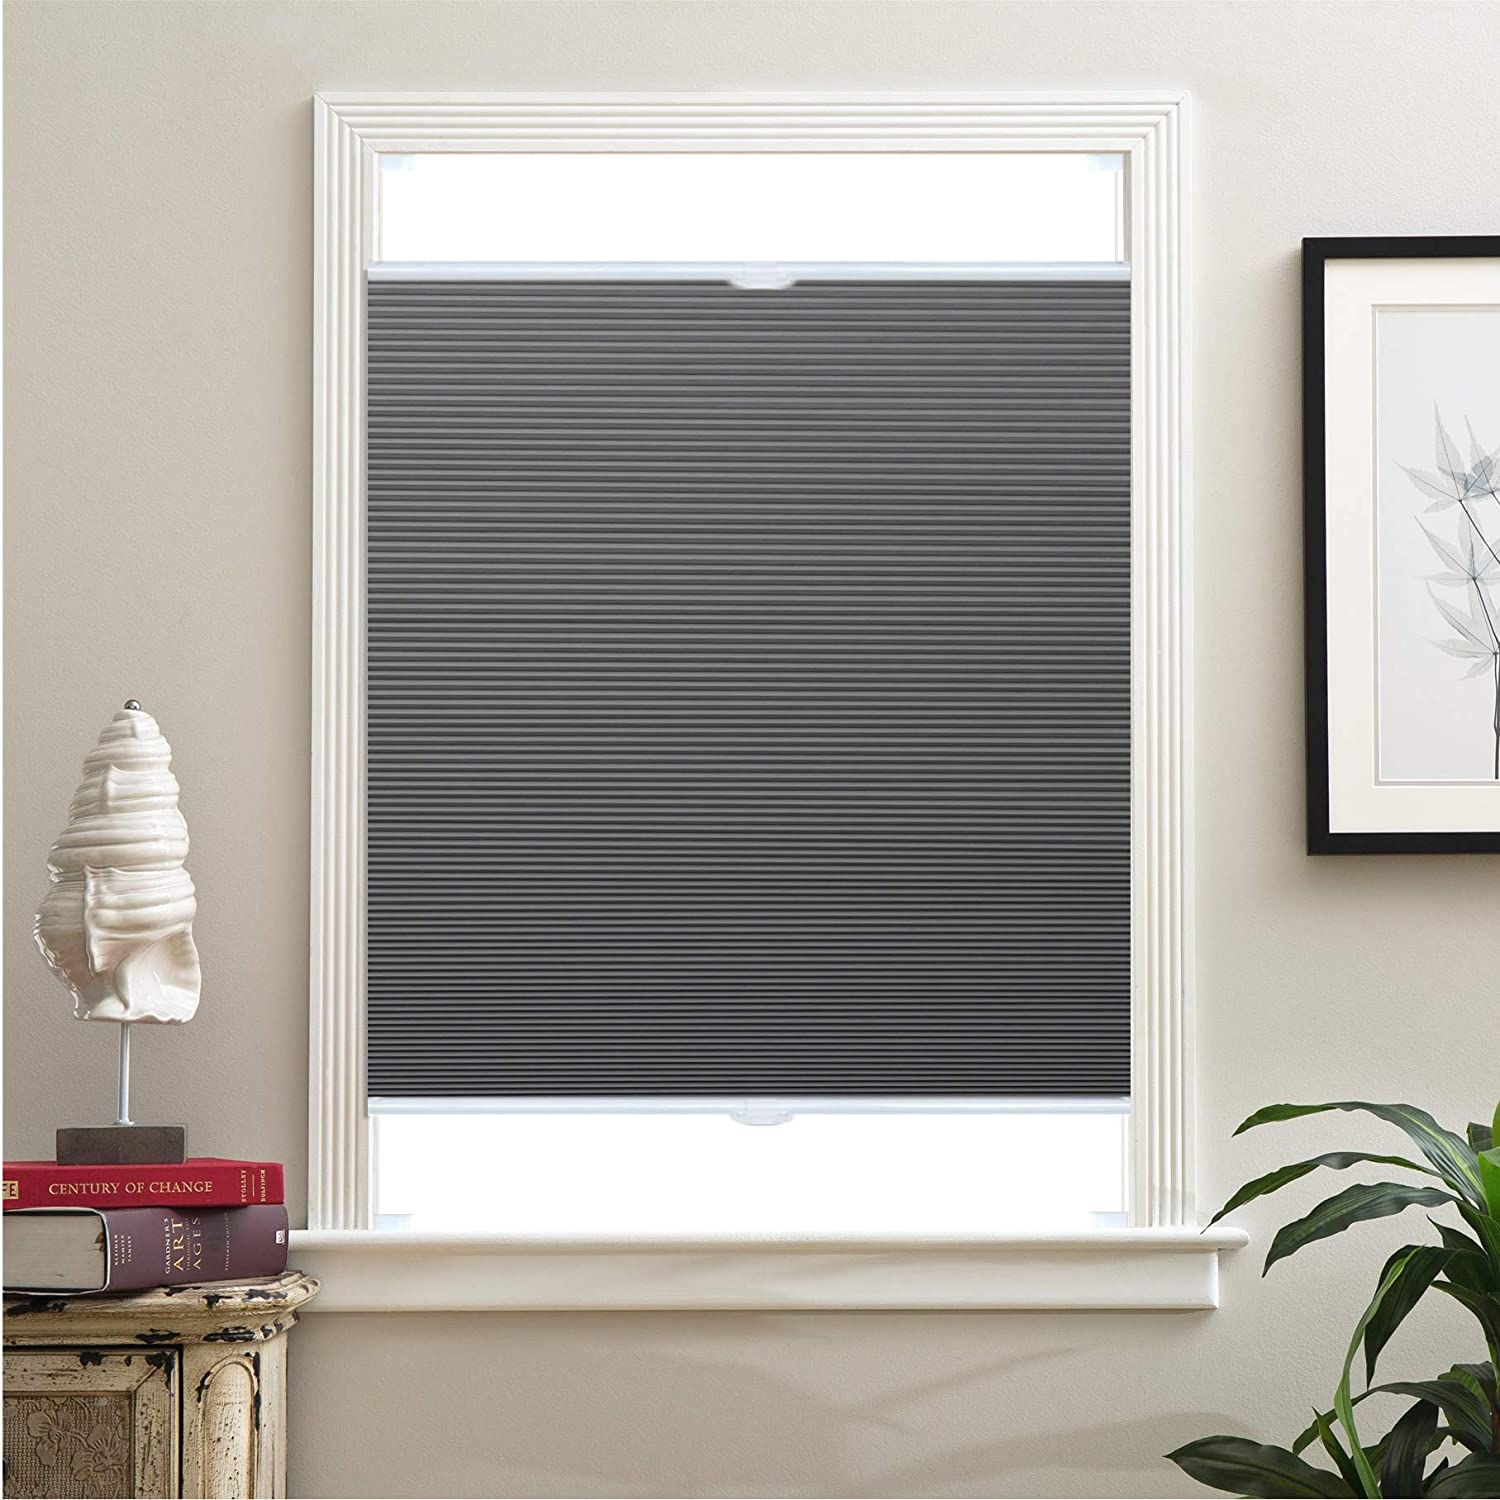 Top Down Blinds Cellular Shades Blackout Top Down Bottom Up Shades Top Down Shades Honeycomb Shades Blackout Cellular Shades Up Down Blinds Honeycomb Blinds Cellular Shades Cellular Blinds